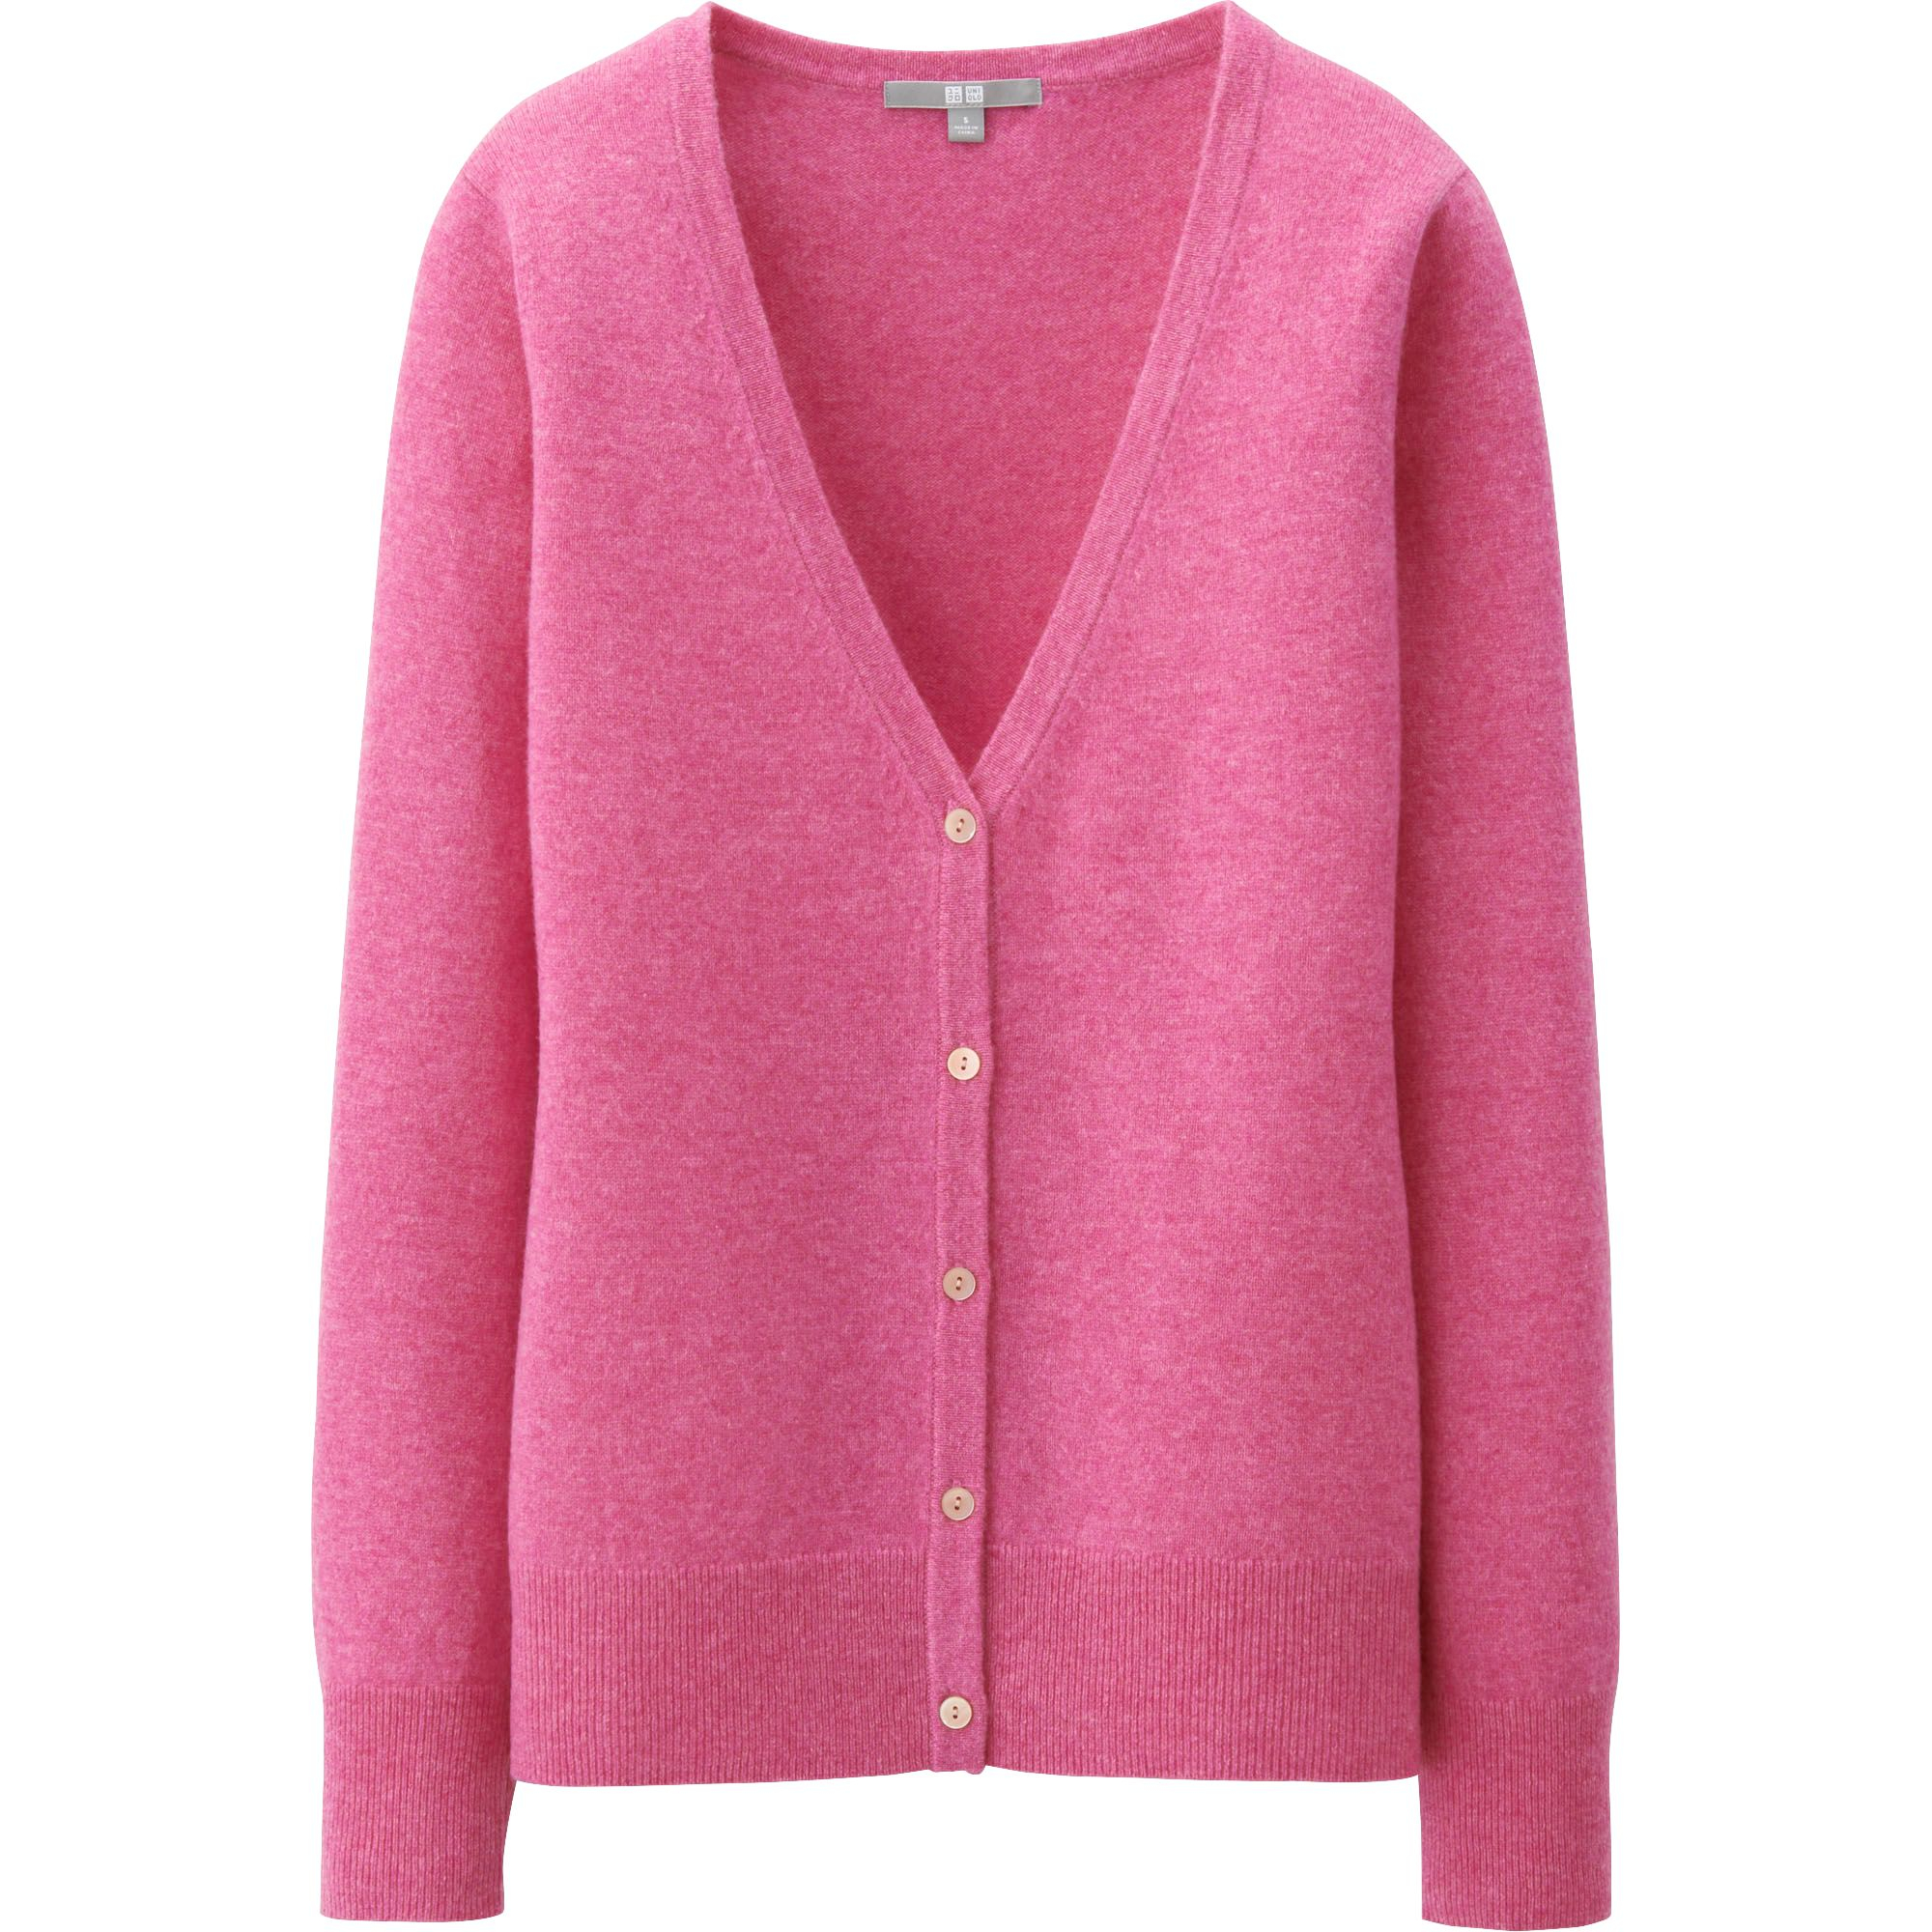 Pink Cashmere Ladies Sweater - Cardigan With Buttons